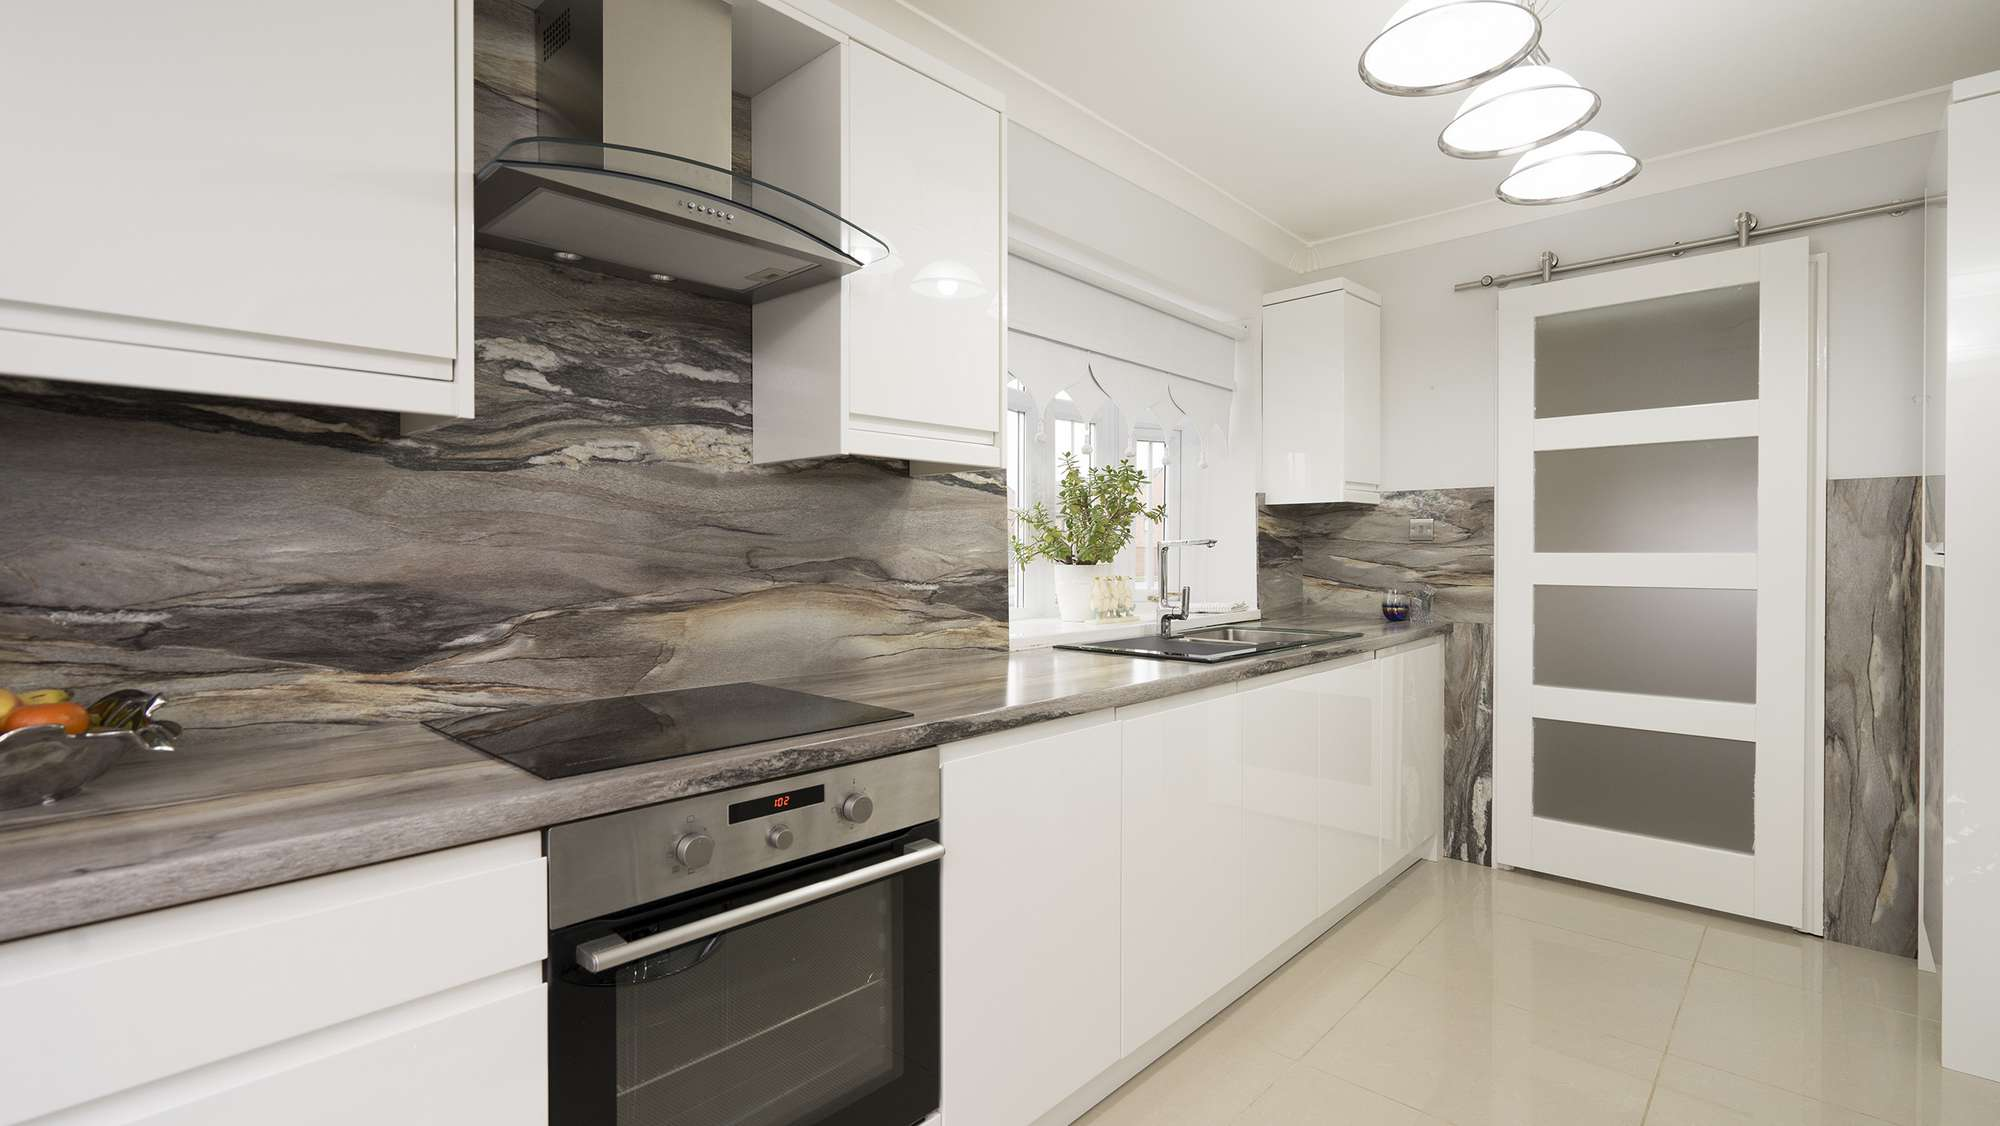 Close up view of the granite style veined backsplash.